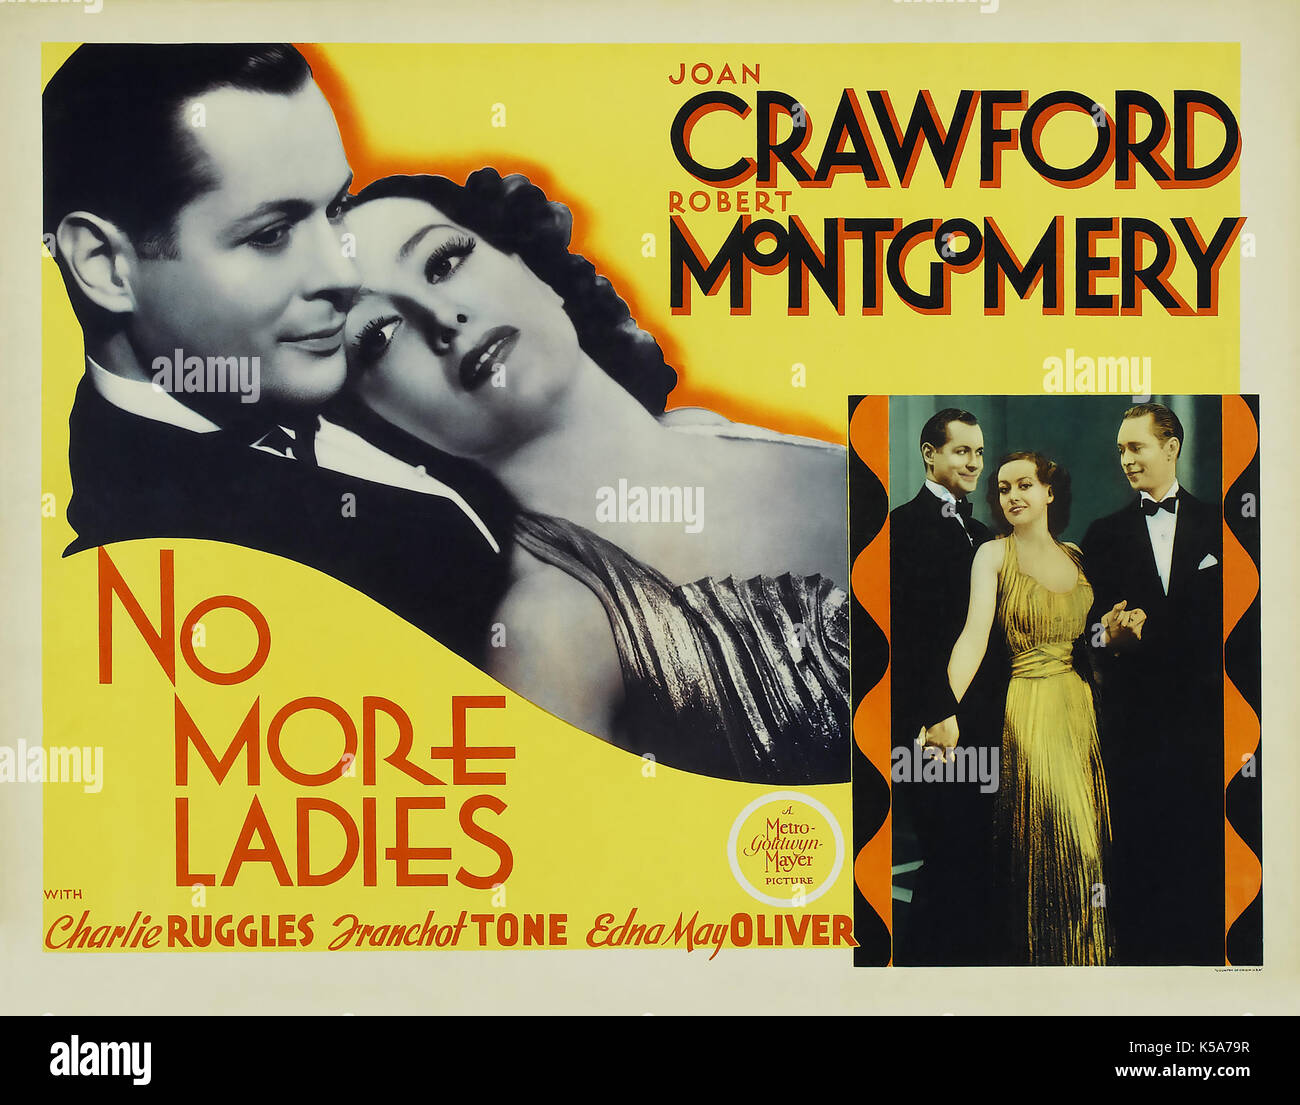 NO MORE LADIES 1935 MGM film with Joan Crawford and Robert Montgomery - Stock Image